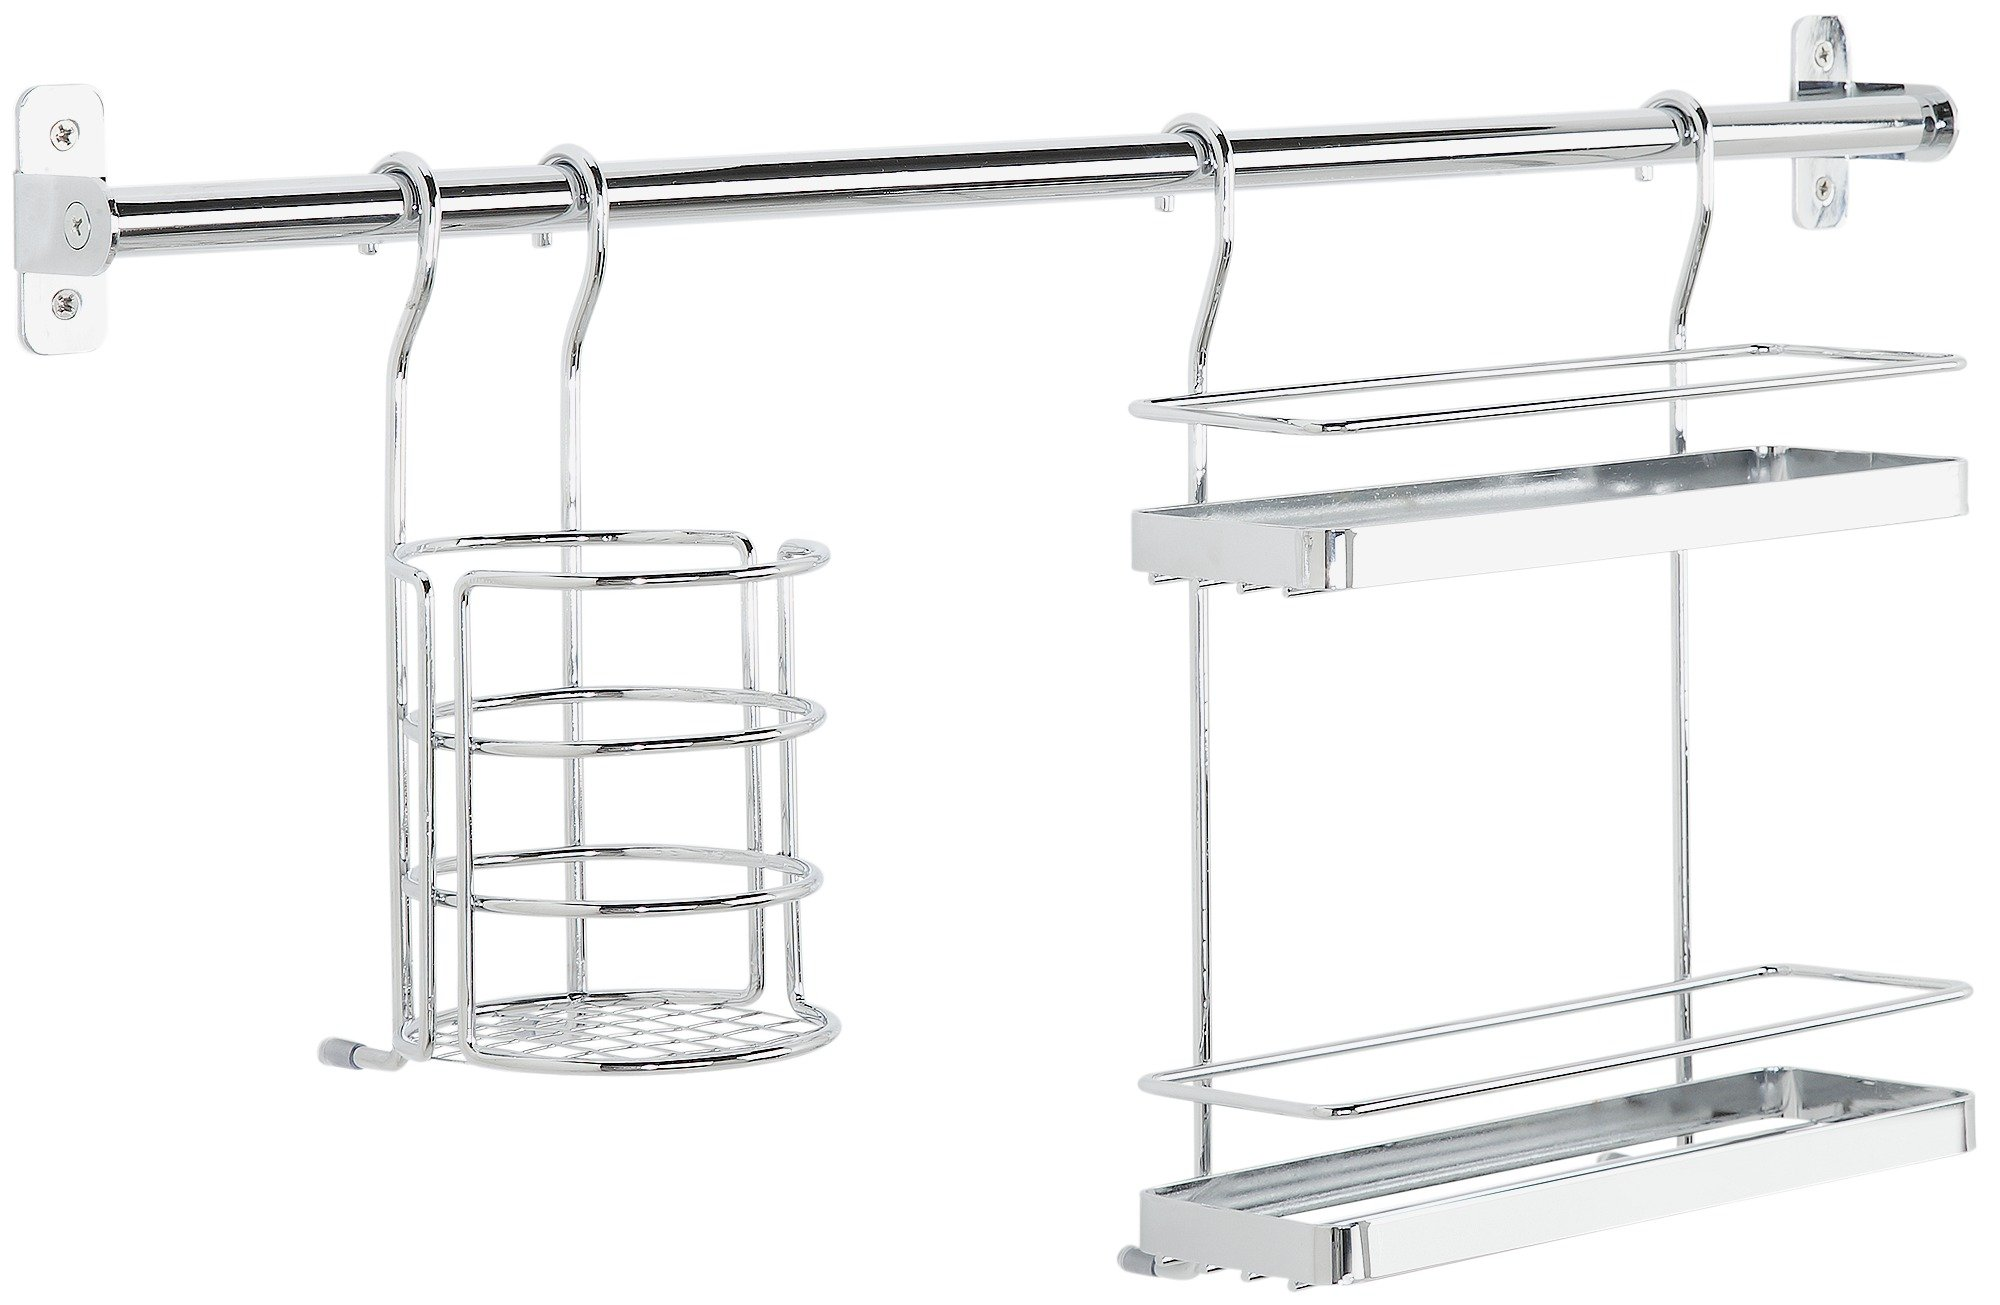 2 Tier Dish Drainer Asda: Wall Hanging, Counter Top & Magnetic